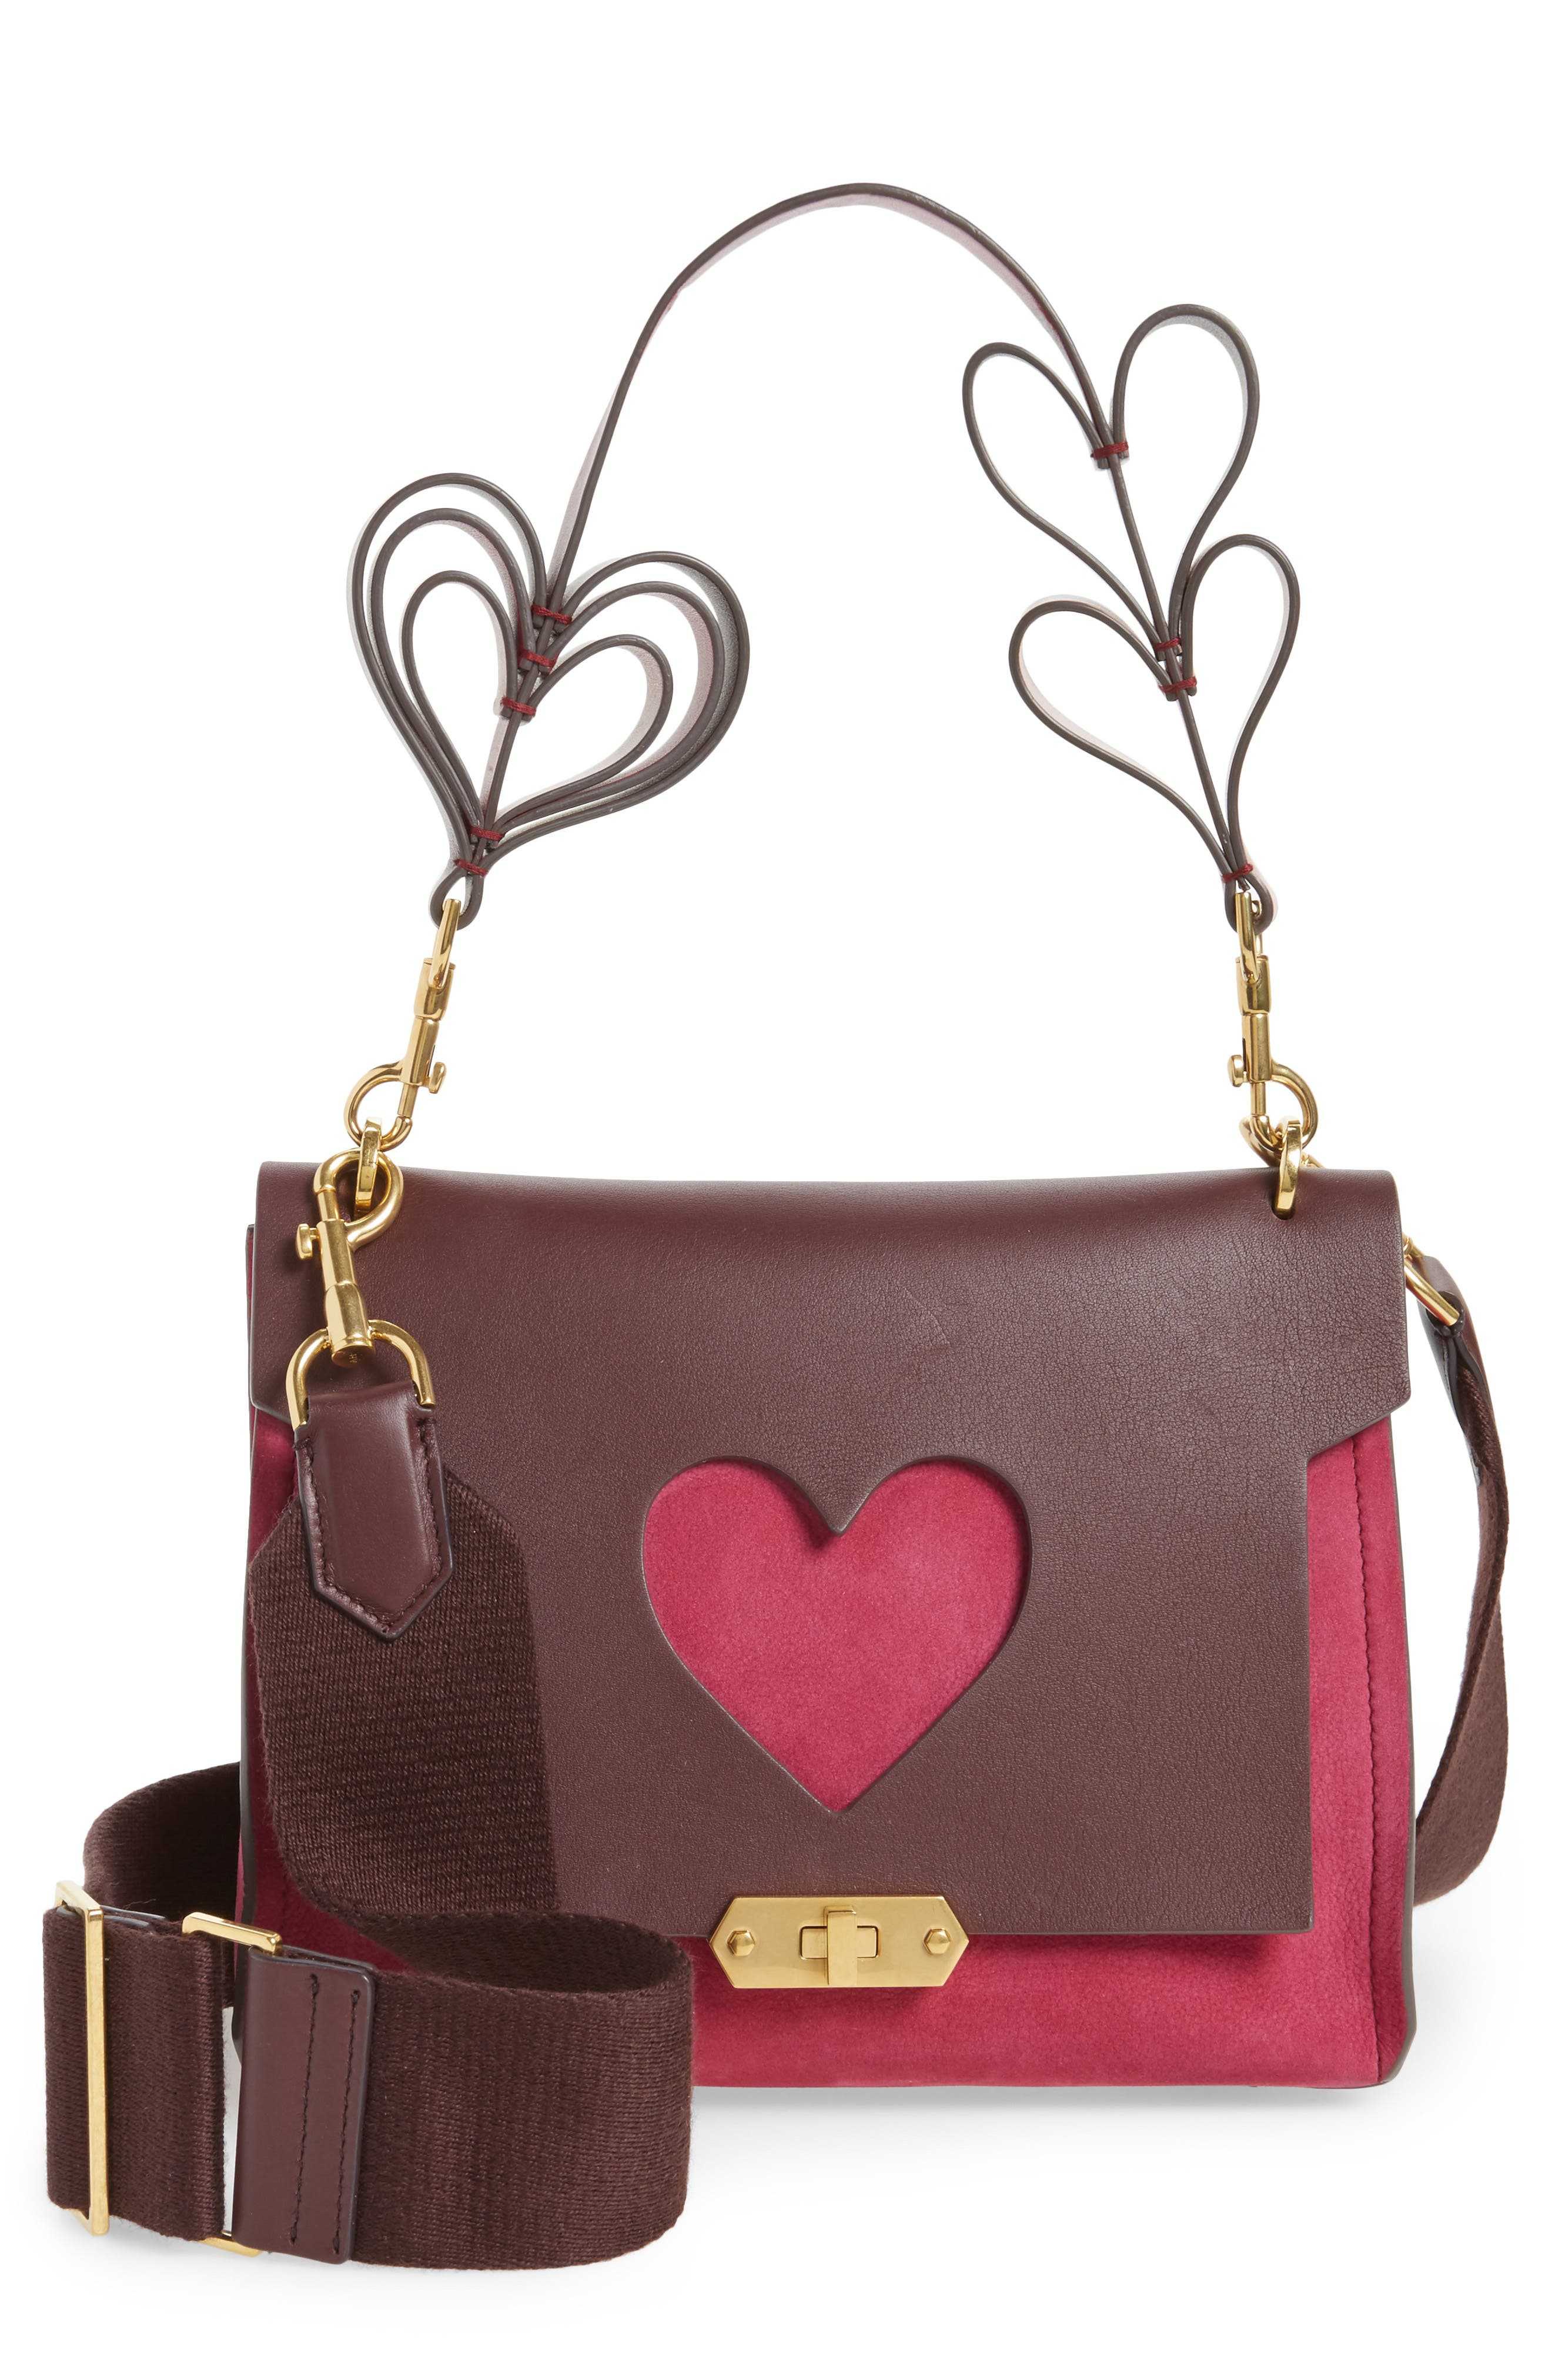 Extra Small Bathhurst Heart Leather Shoulder Bag,                             Main thumbnail 1, color,                             Raspberry